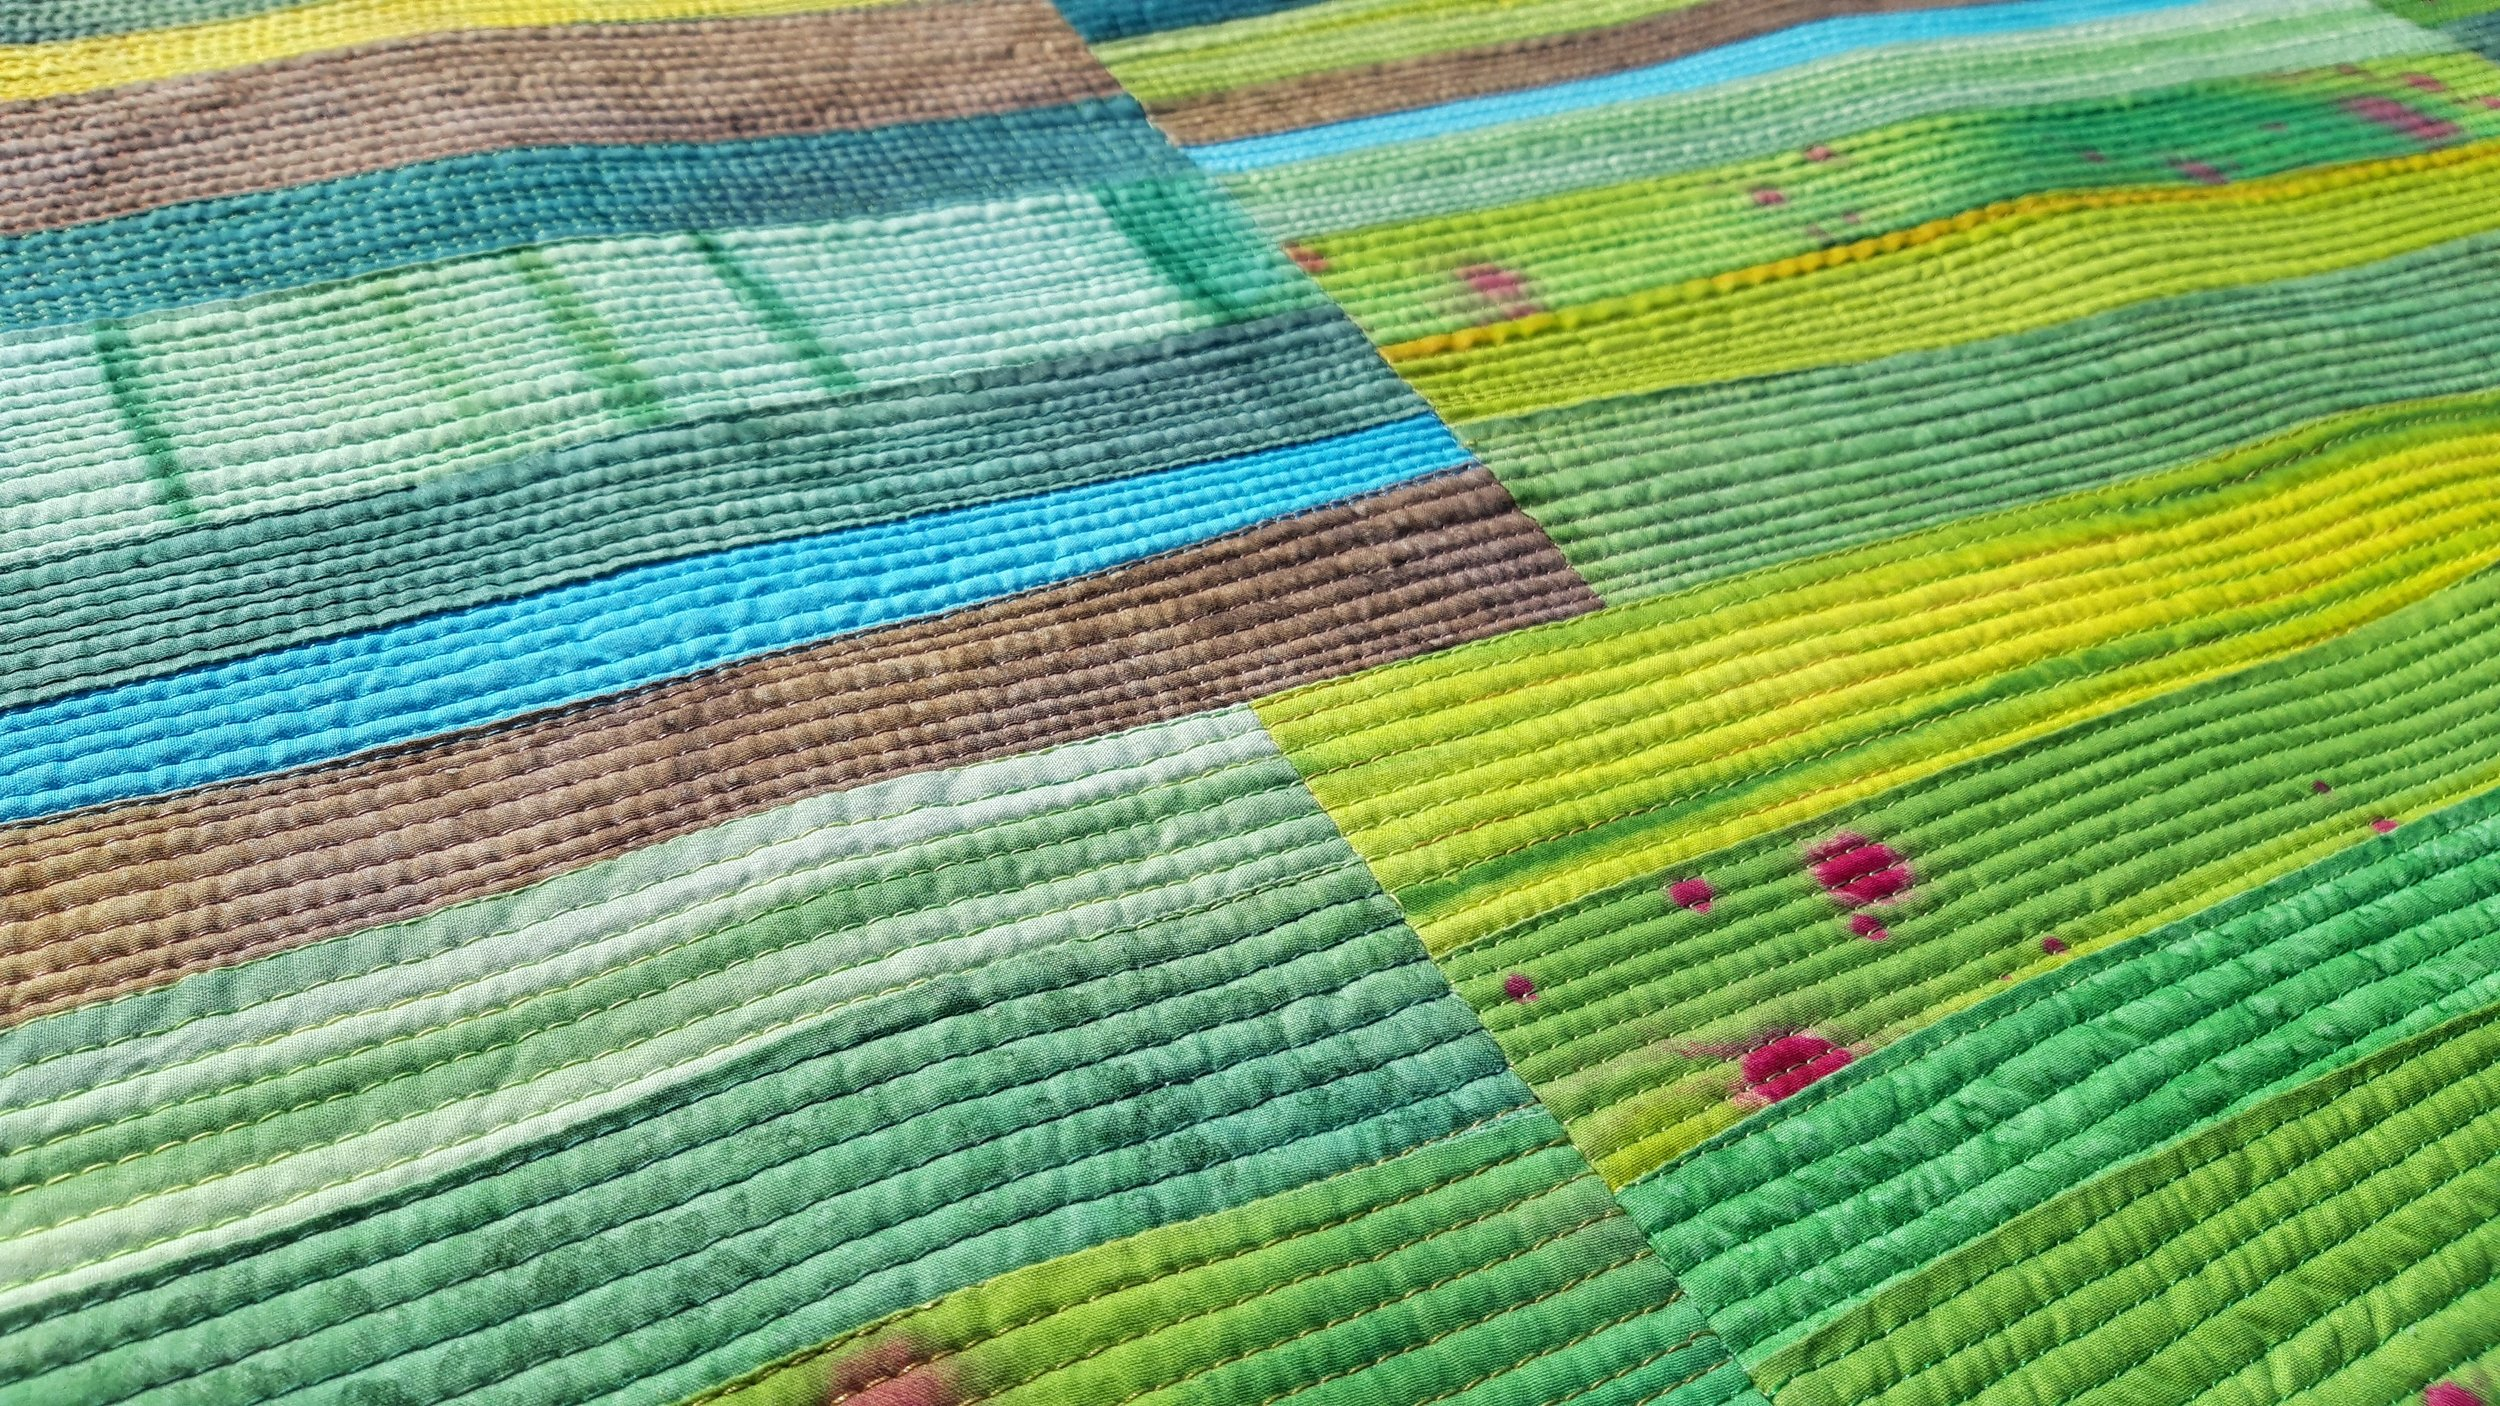 Two Day Workshops - Join me for a day of painting fabric followed by a day of quilting and stitching.DETAILS COMING SOON!